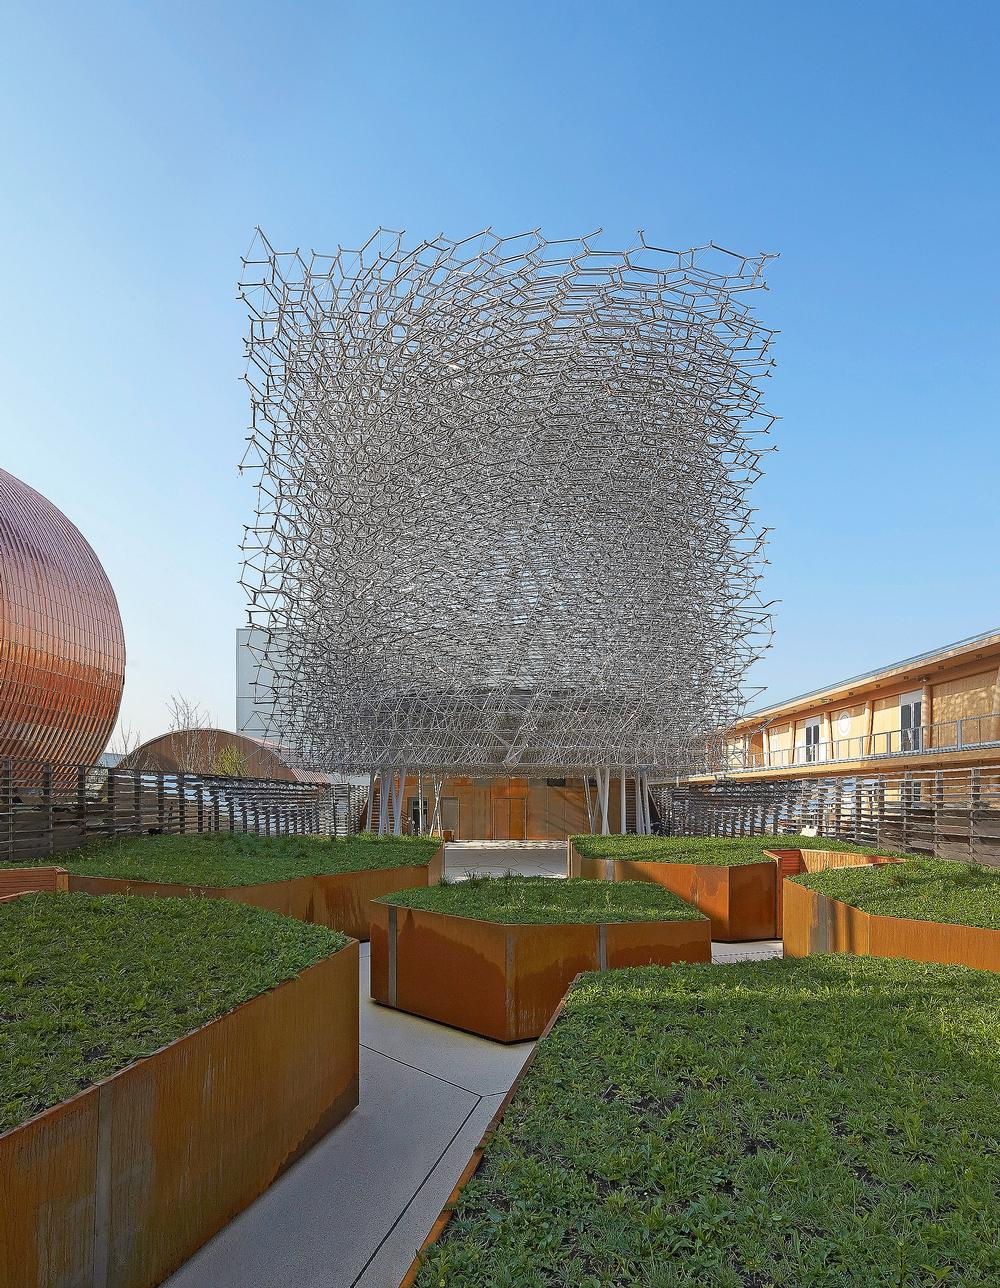 The HIve was constructed by Stage One, who also built Thomas Heatherwick's Olympic torch